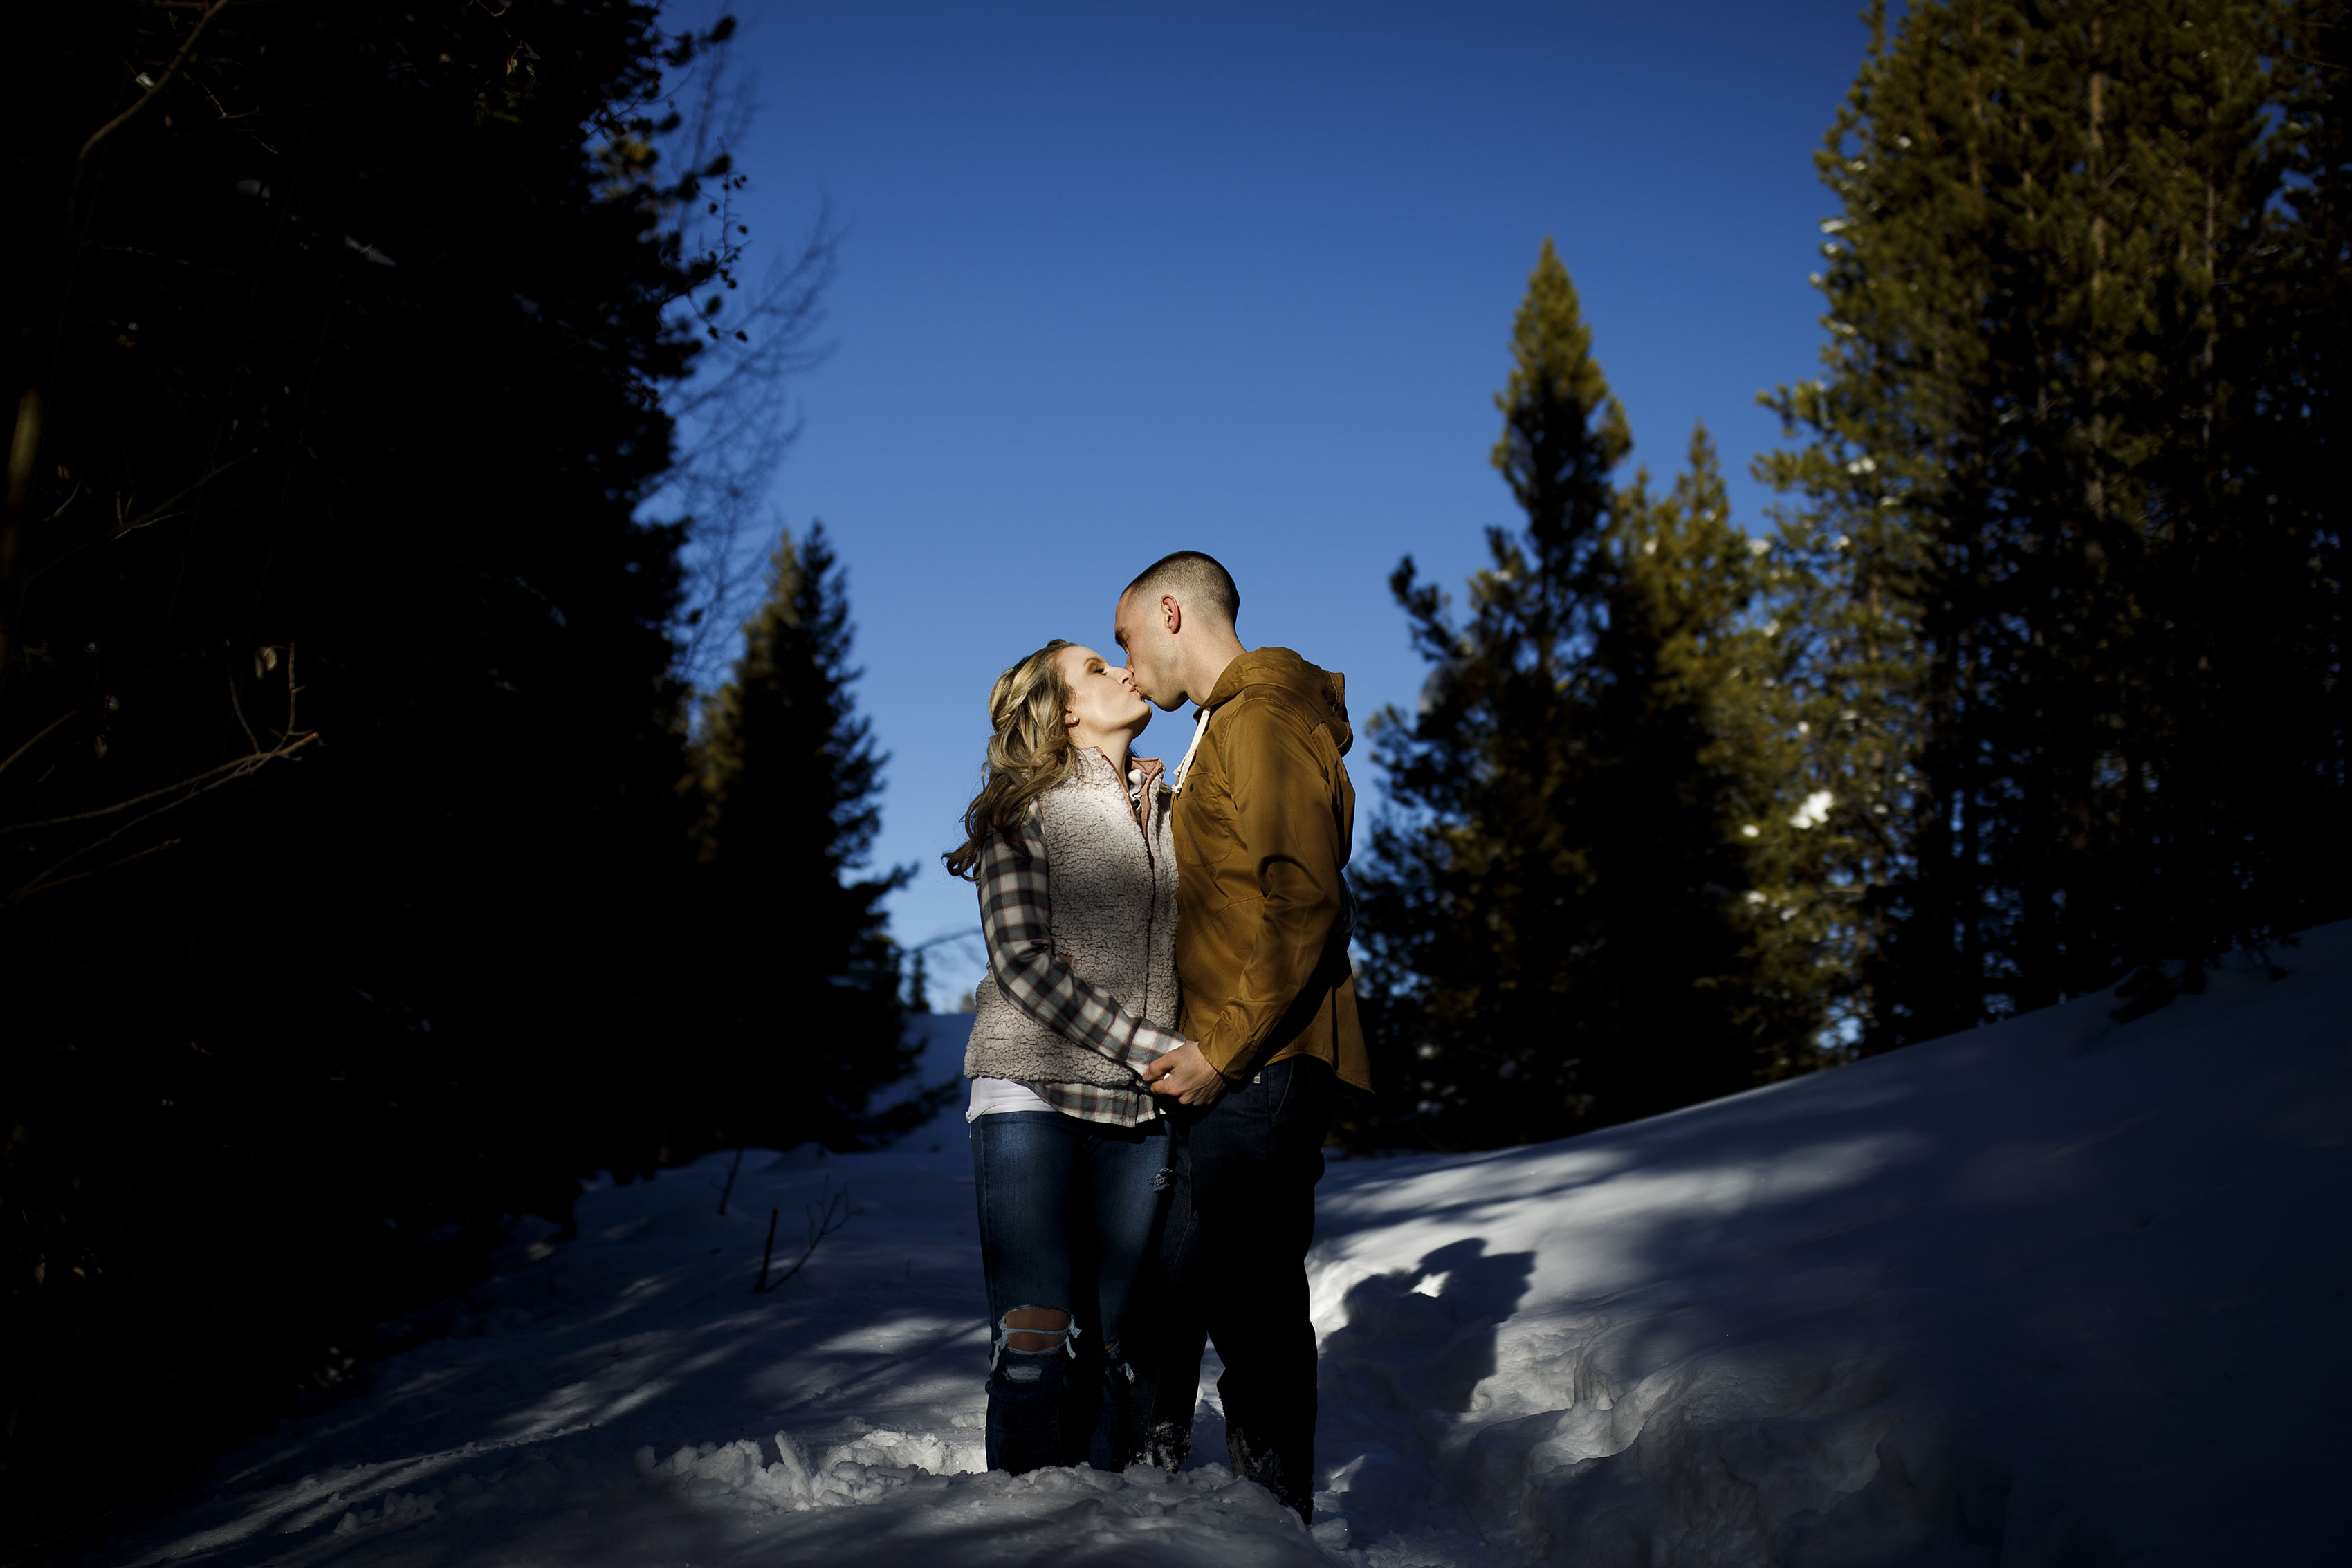 Shane kisses Cassidy in the snow during their engagement session in Breckenridge